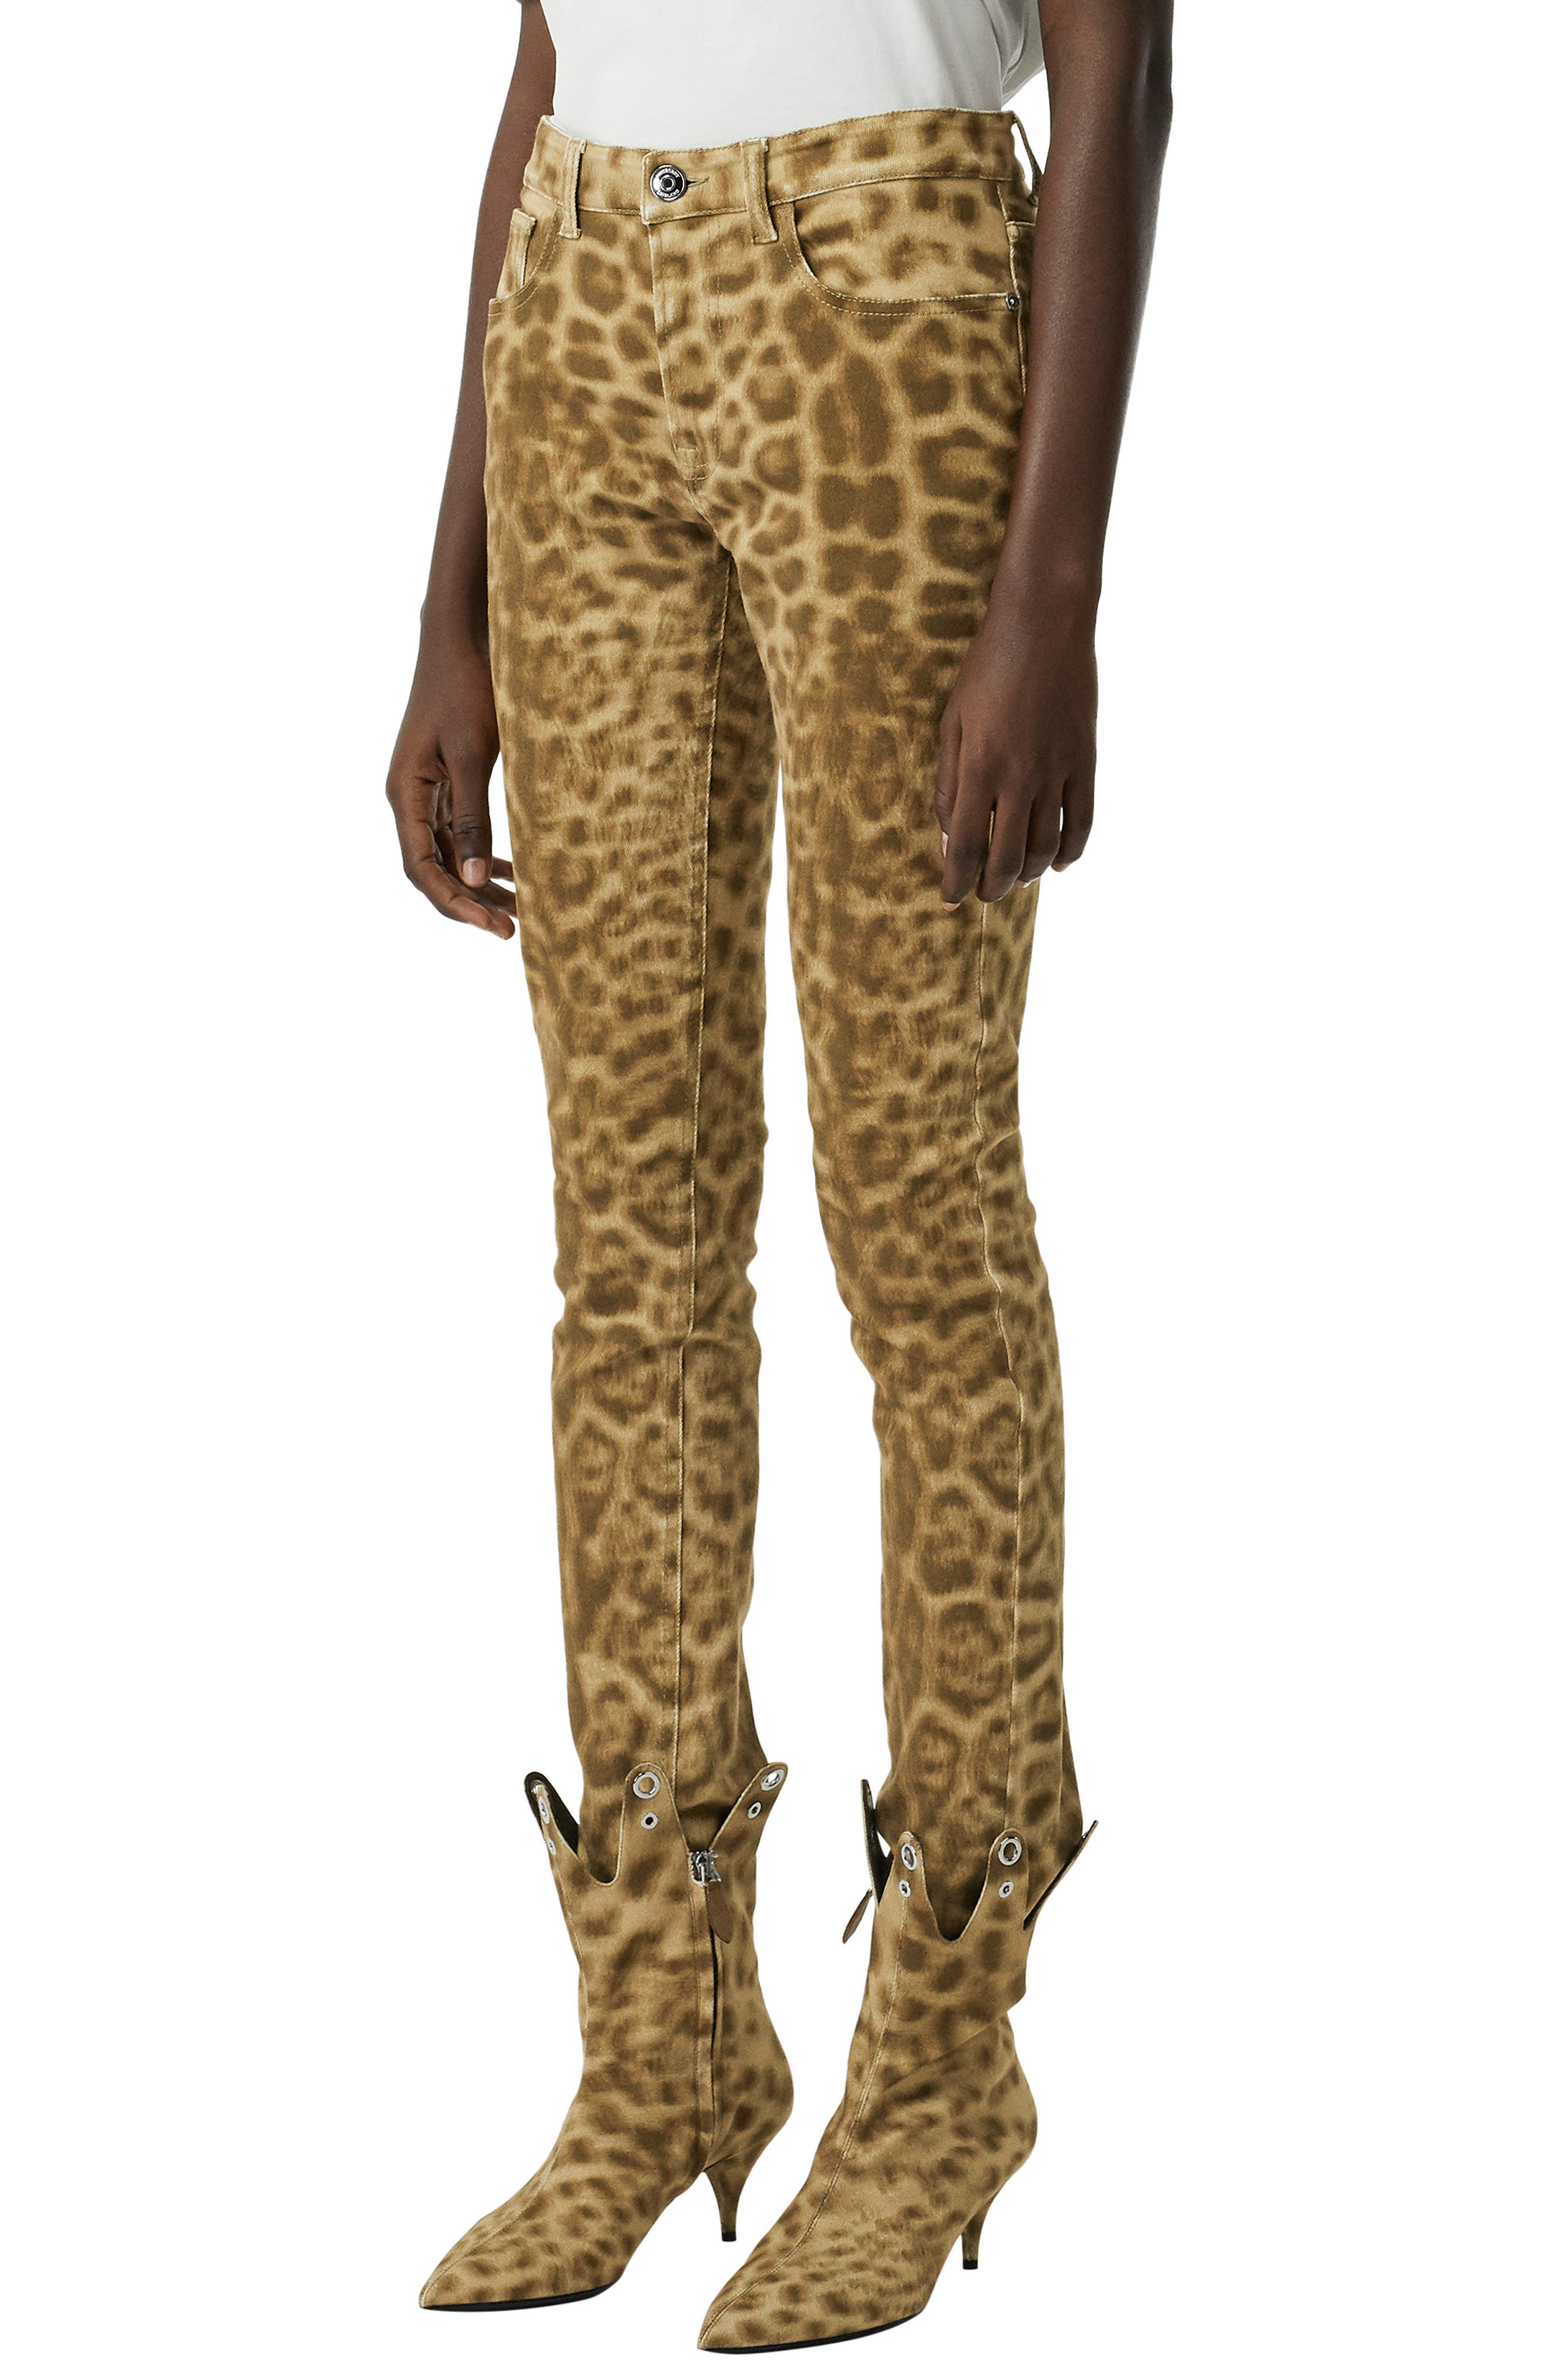 Burberry Jeans Leopard Print Skinny Jeans